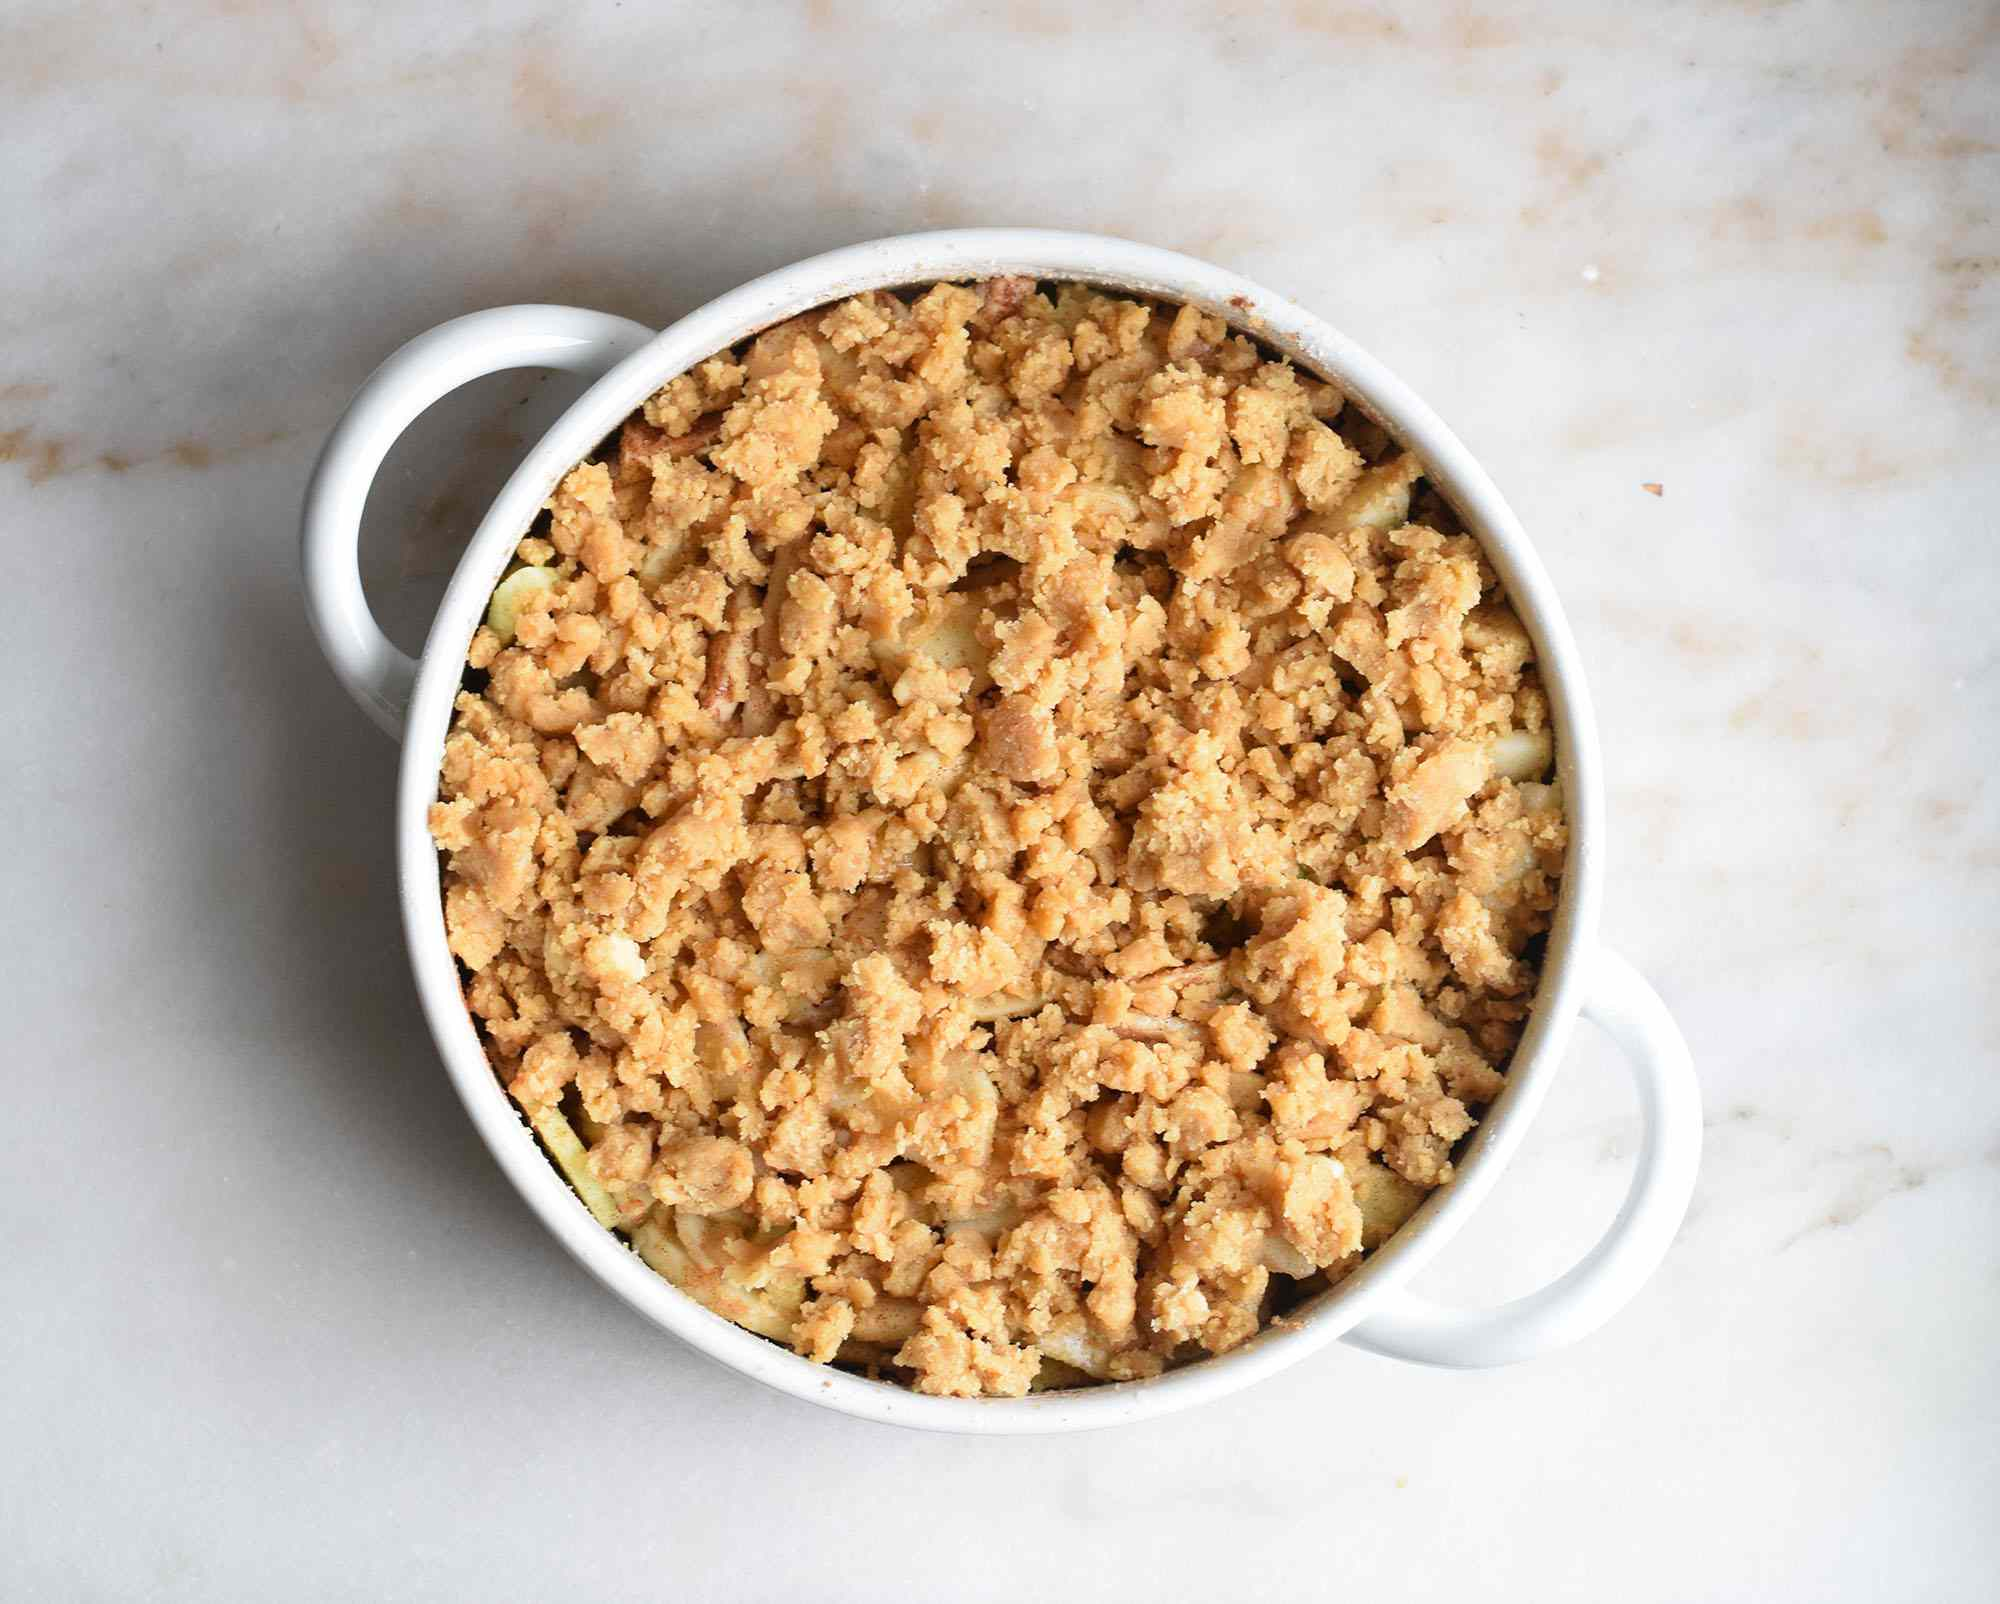 apples topped with streusel